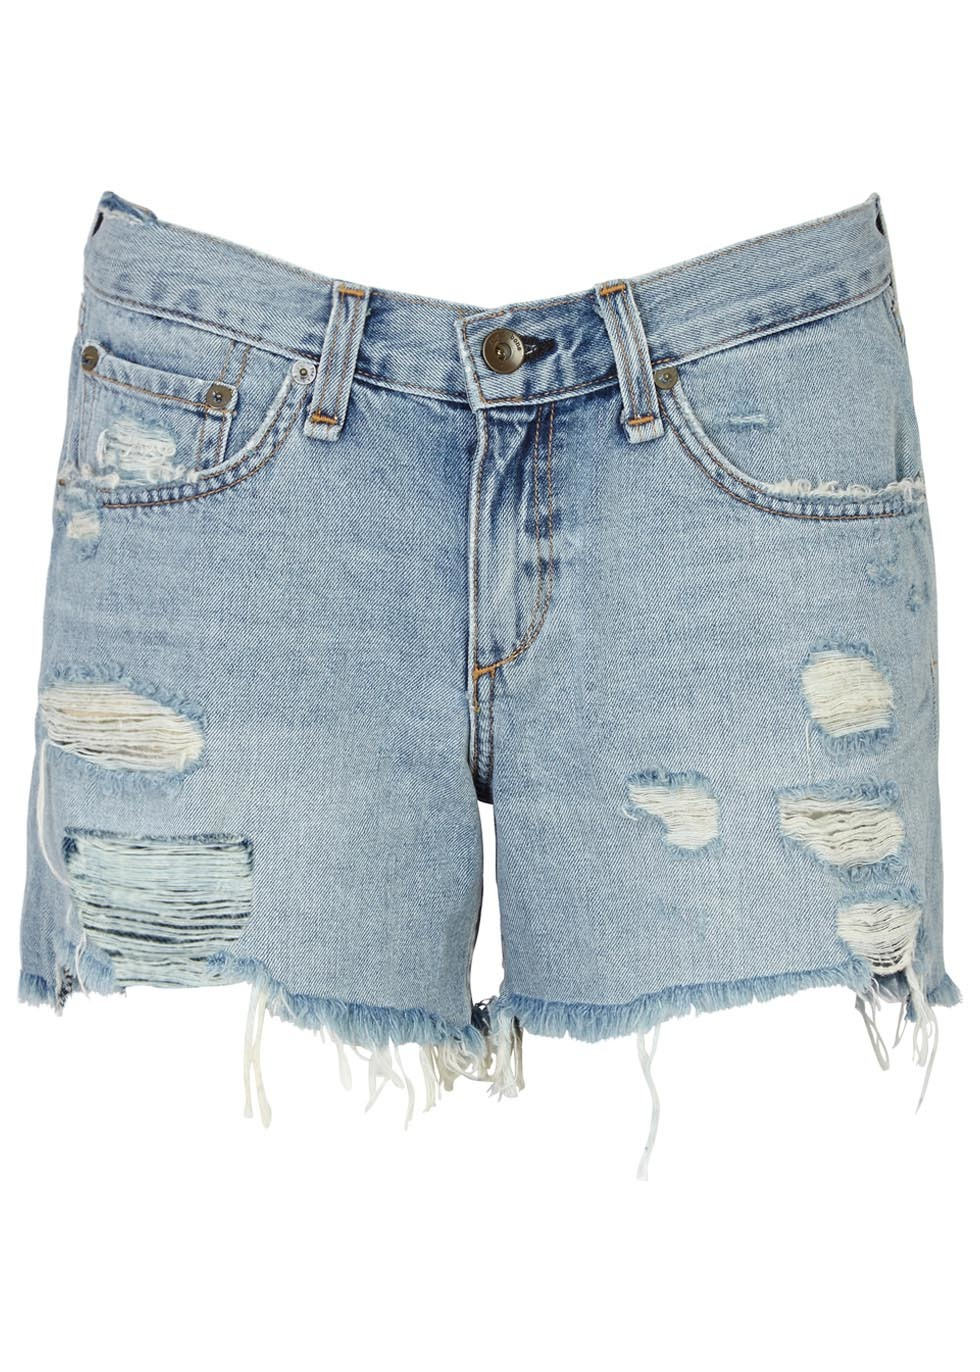 Blue Distressed Boyfriend Denim Shorts - pattern: plain; waist: mid/regular rise; predominant colour: pale blue; occasions: casual, holiday; fibres: cotton - 100%; texture group: denim; pattern type: fabric; pattern size: standard (bottom); season: s/s 2016; style: denim; length: mid thigh shorts; fit: slim leg; wardrobe: holiday